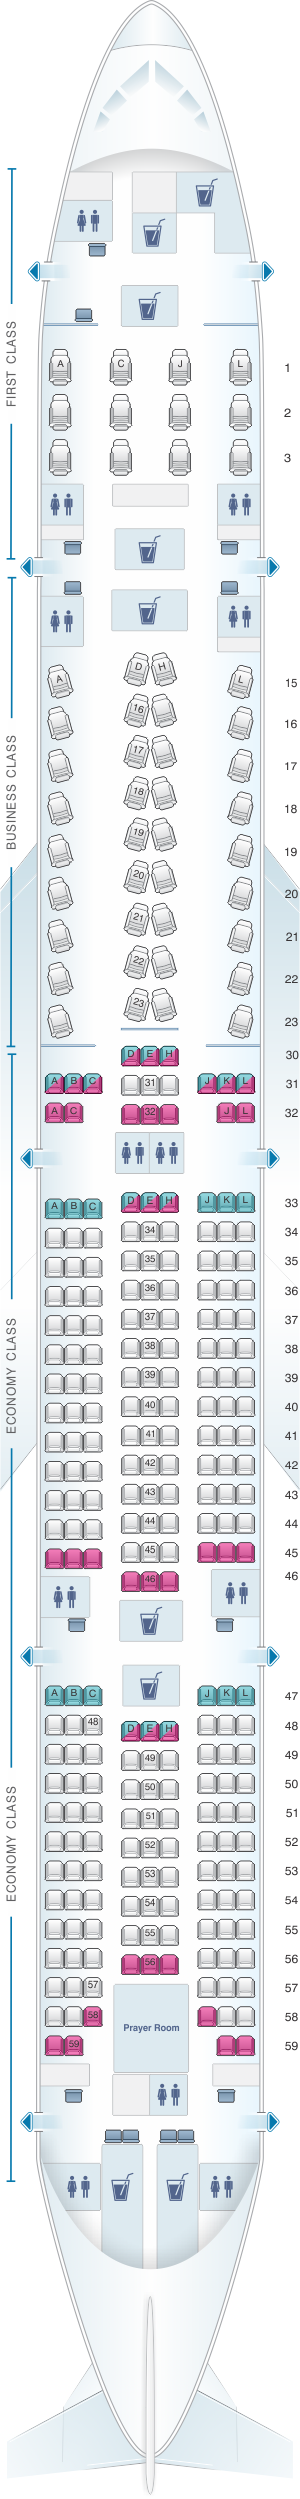 Seat map for Saudi Arabian Airlines Boeing B777 300ER (Z)